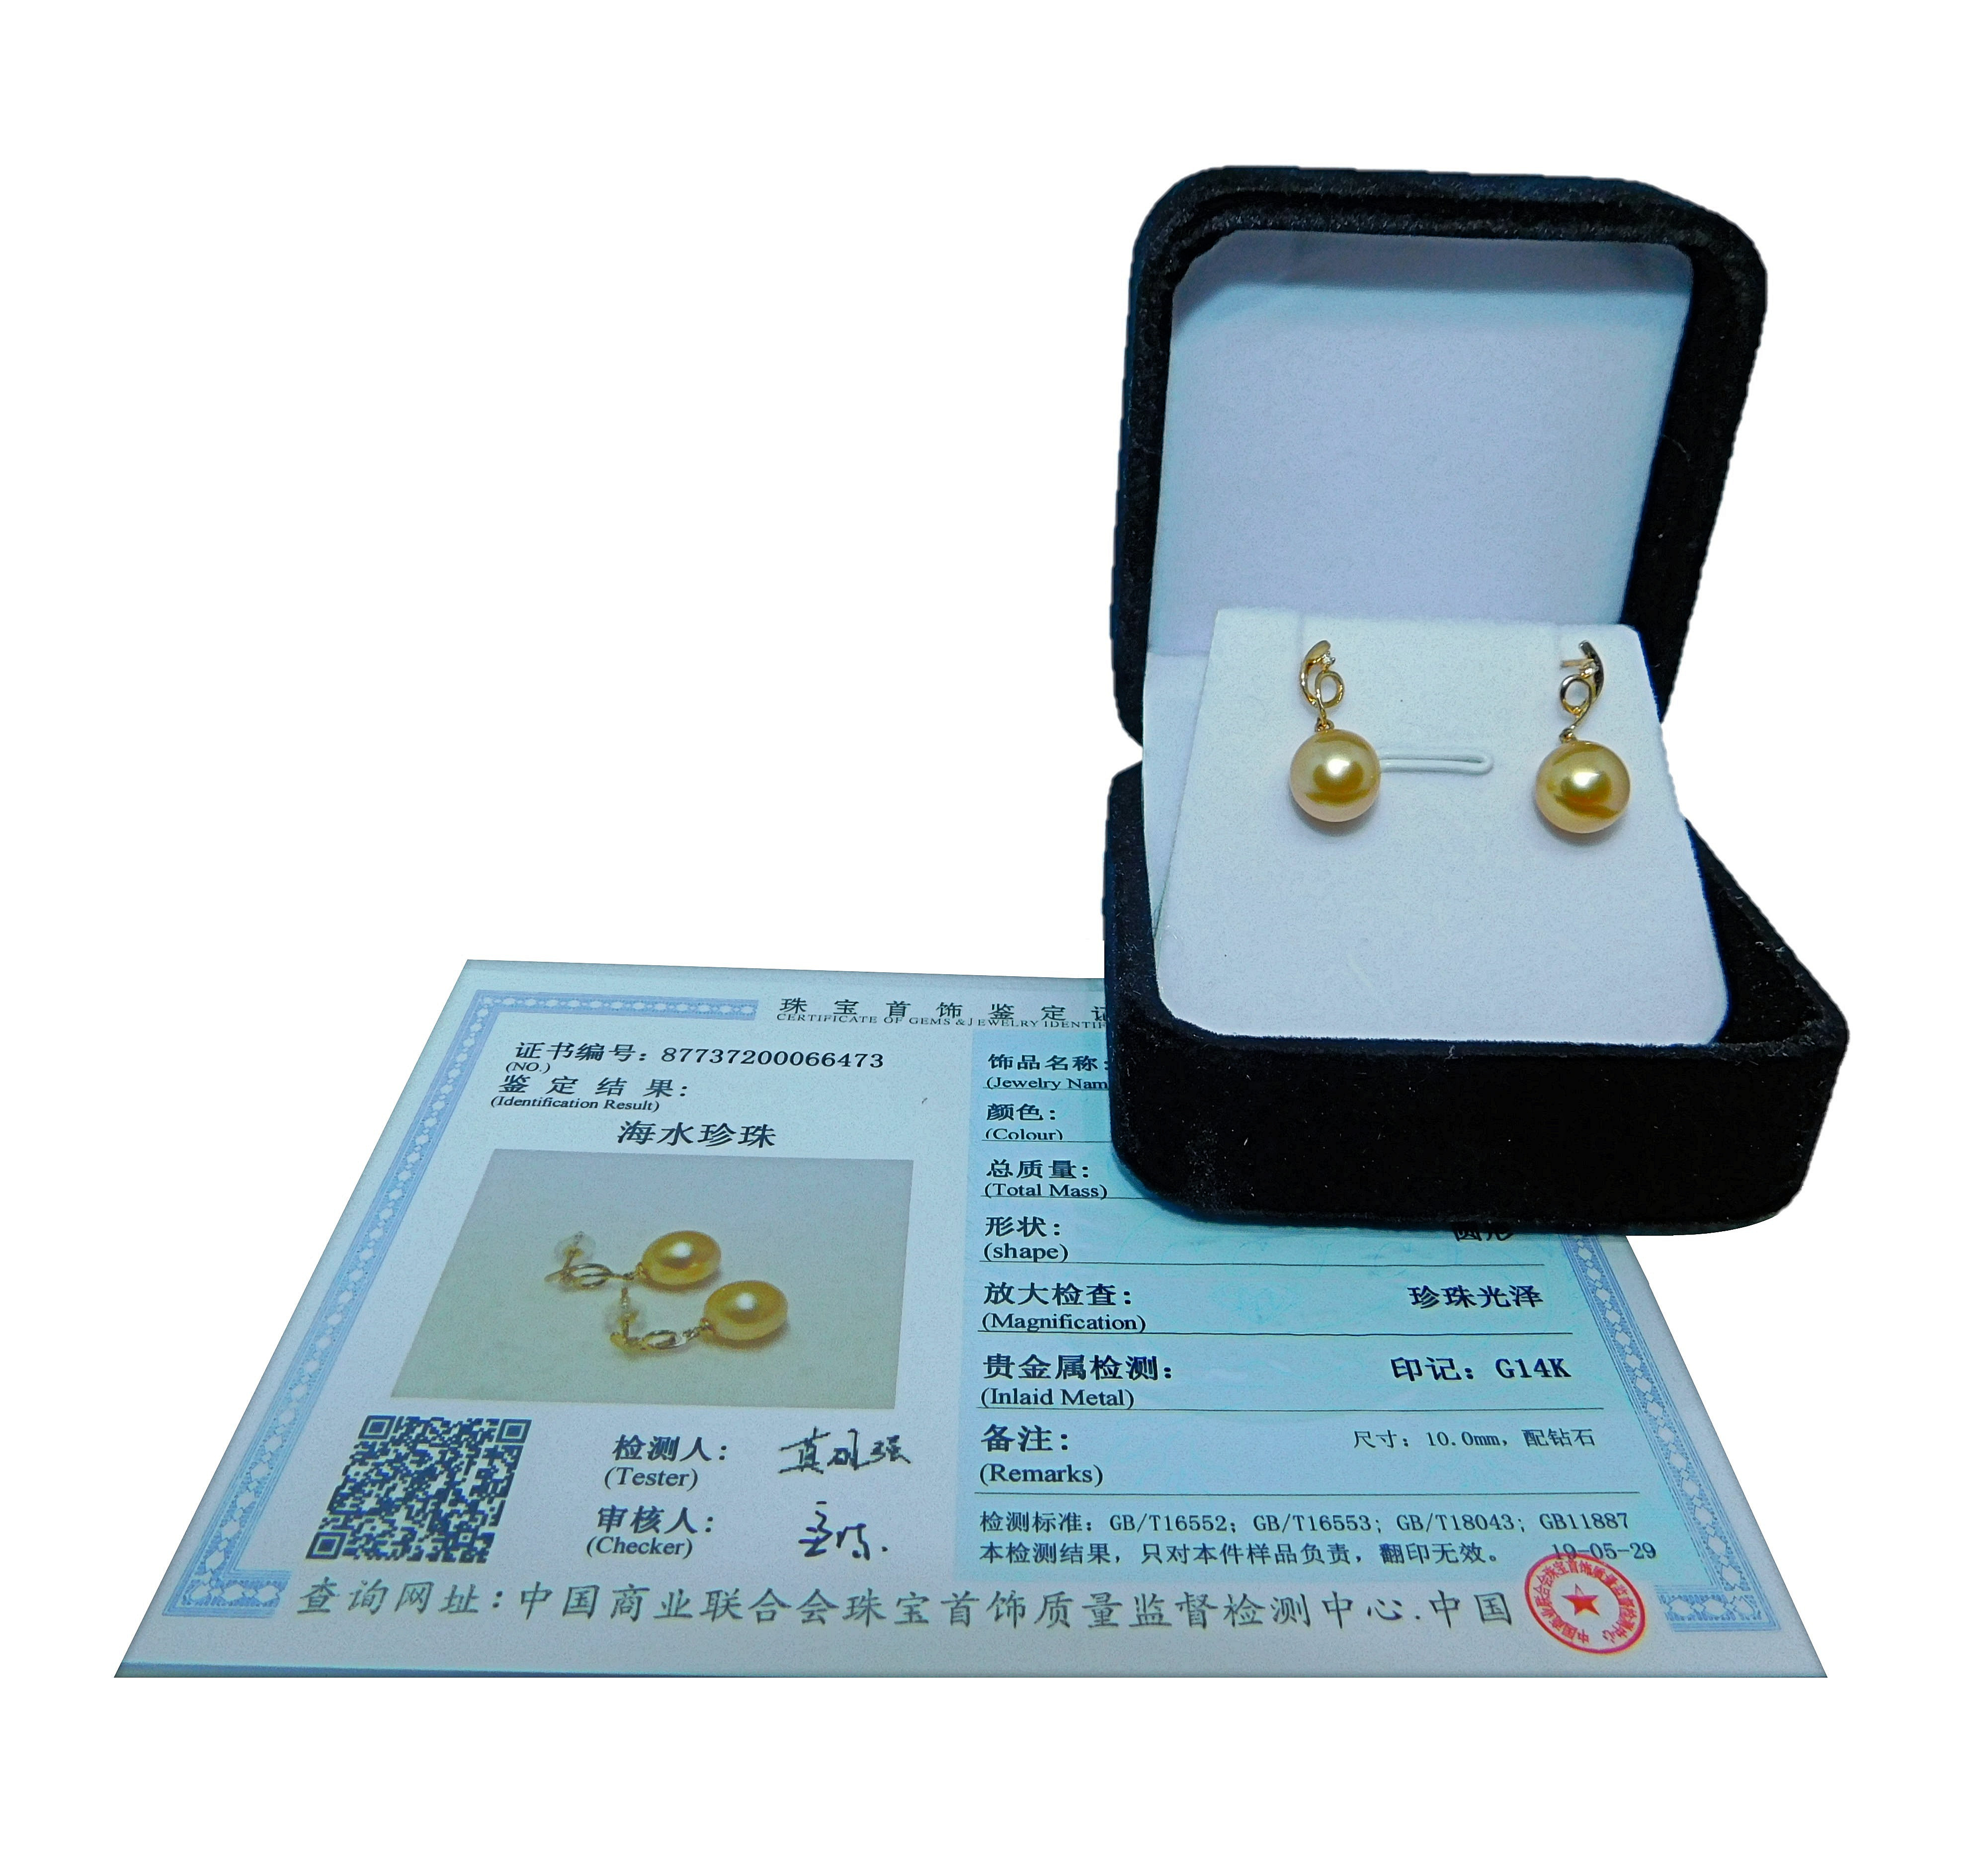 Exquisite earrings feature two 9.0-10.0mm  Gold South Sea pearls, selected for their luminous luster